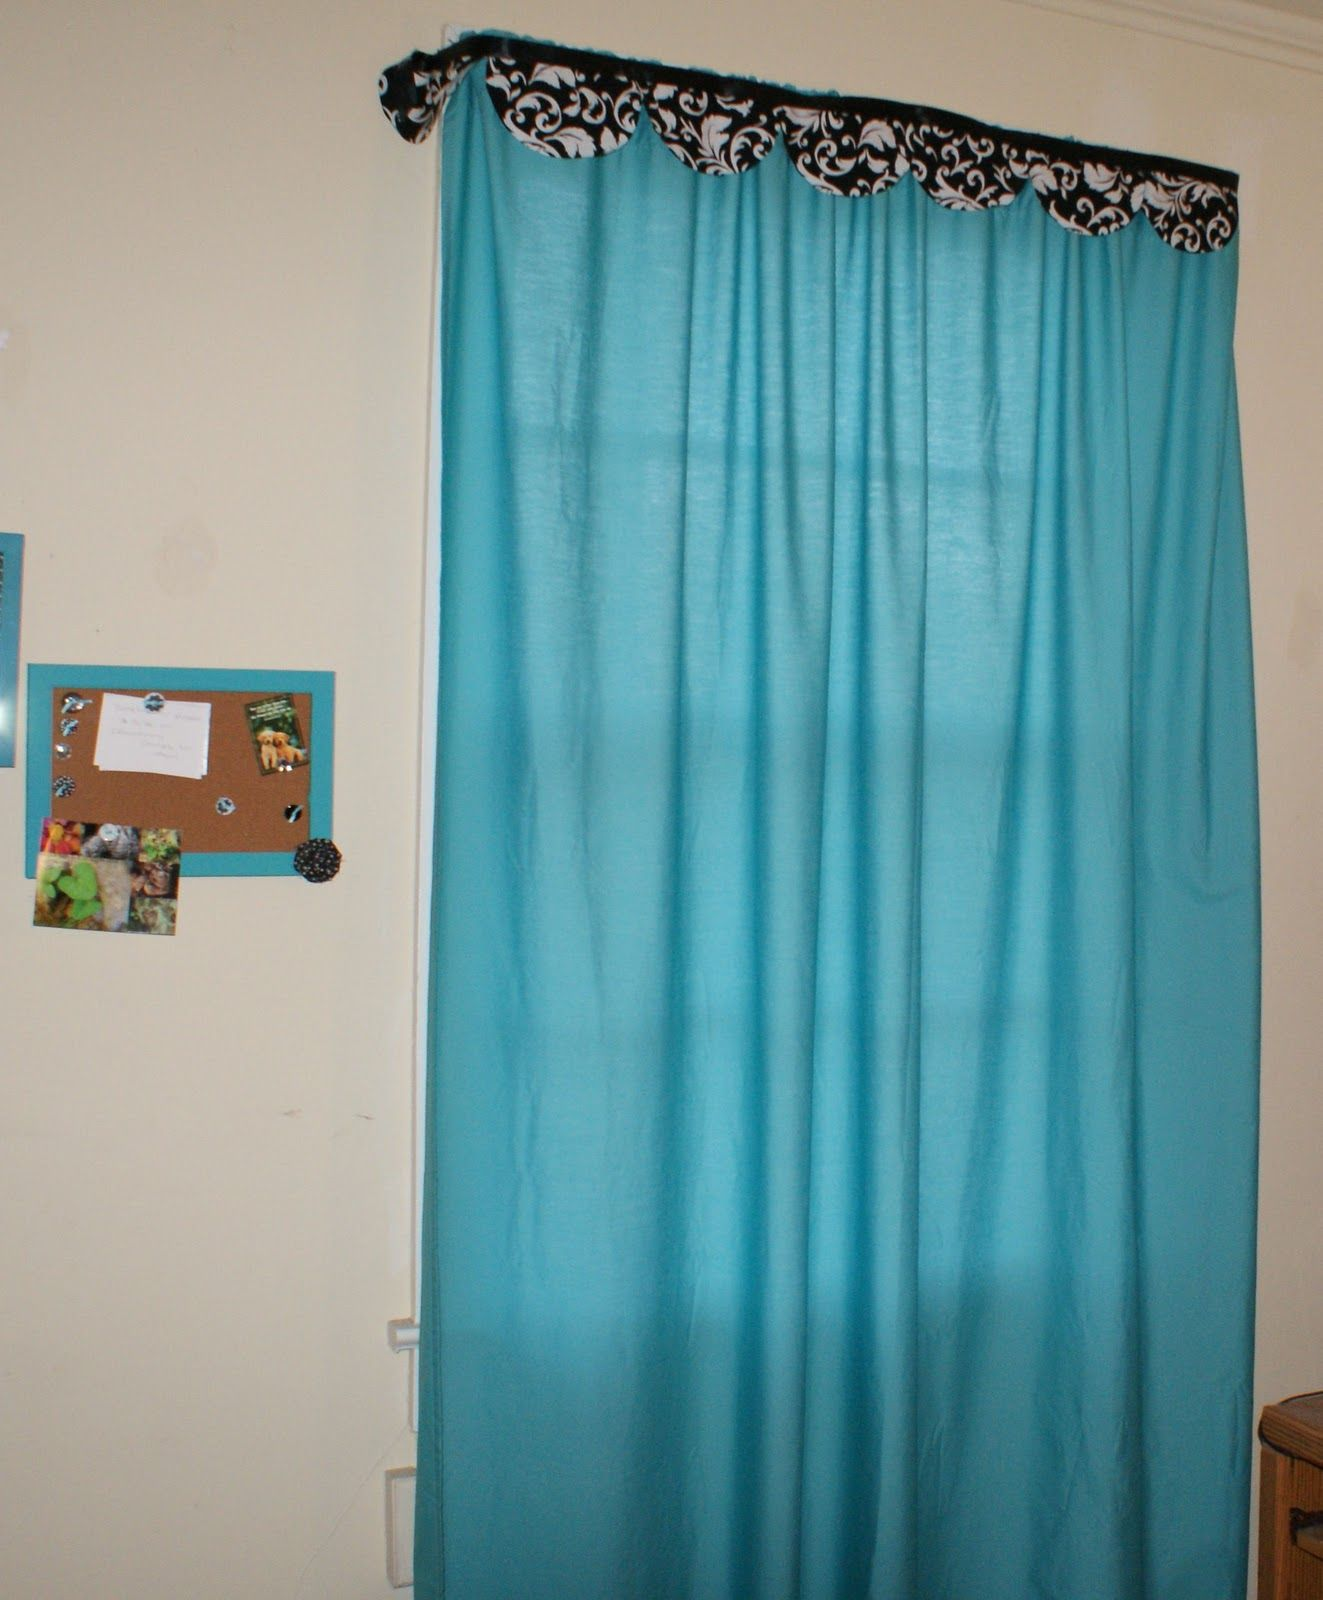 Fitted sheets and fabric make a curtain no sew curtains